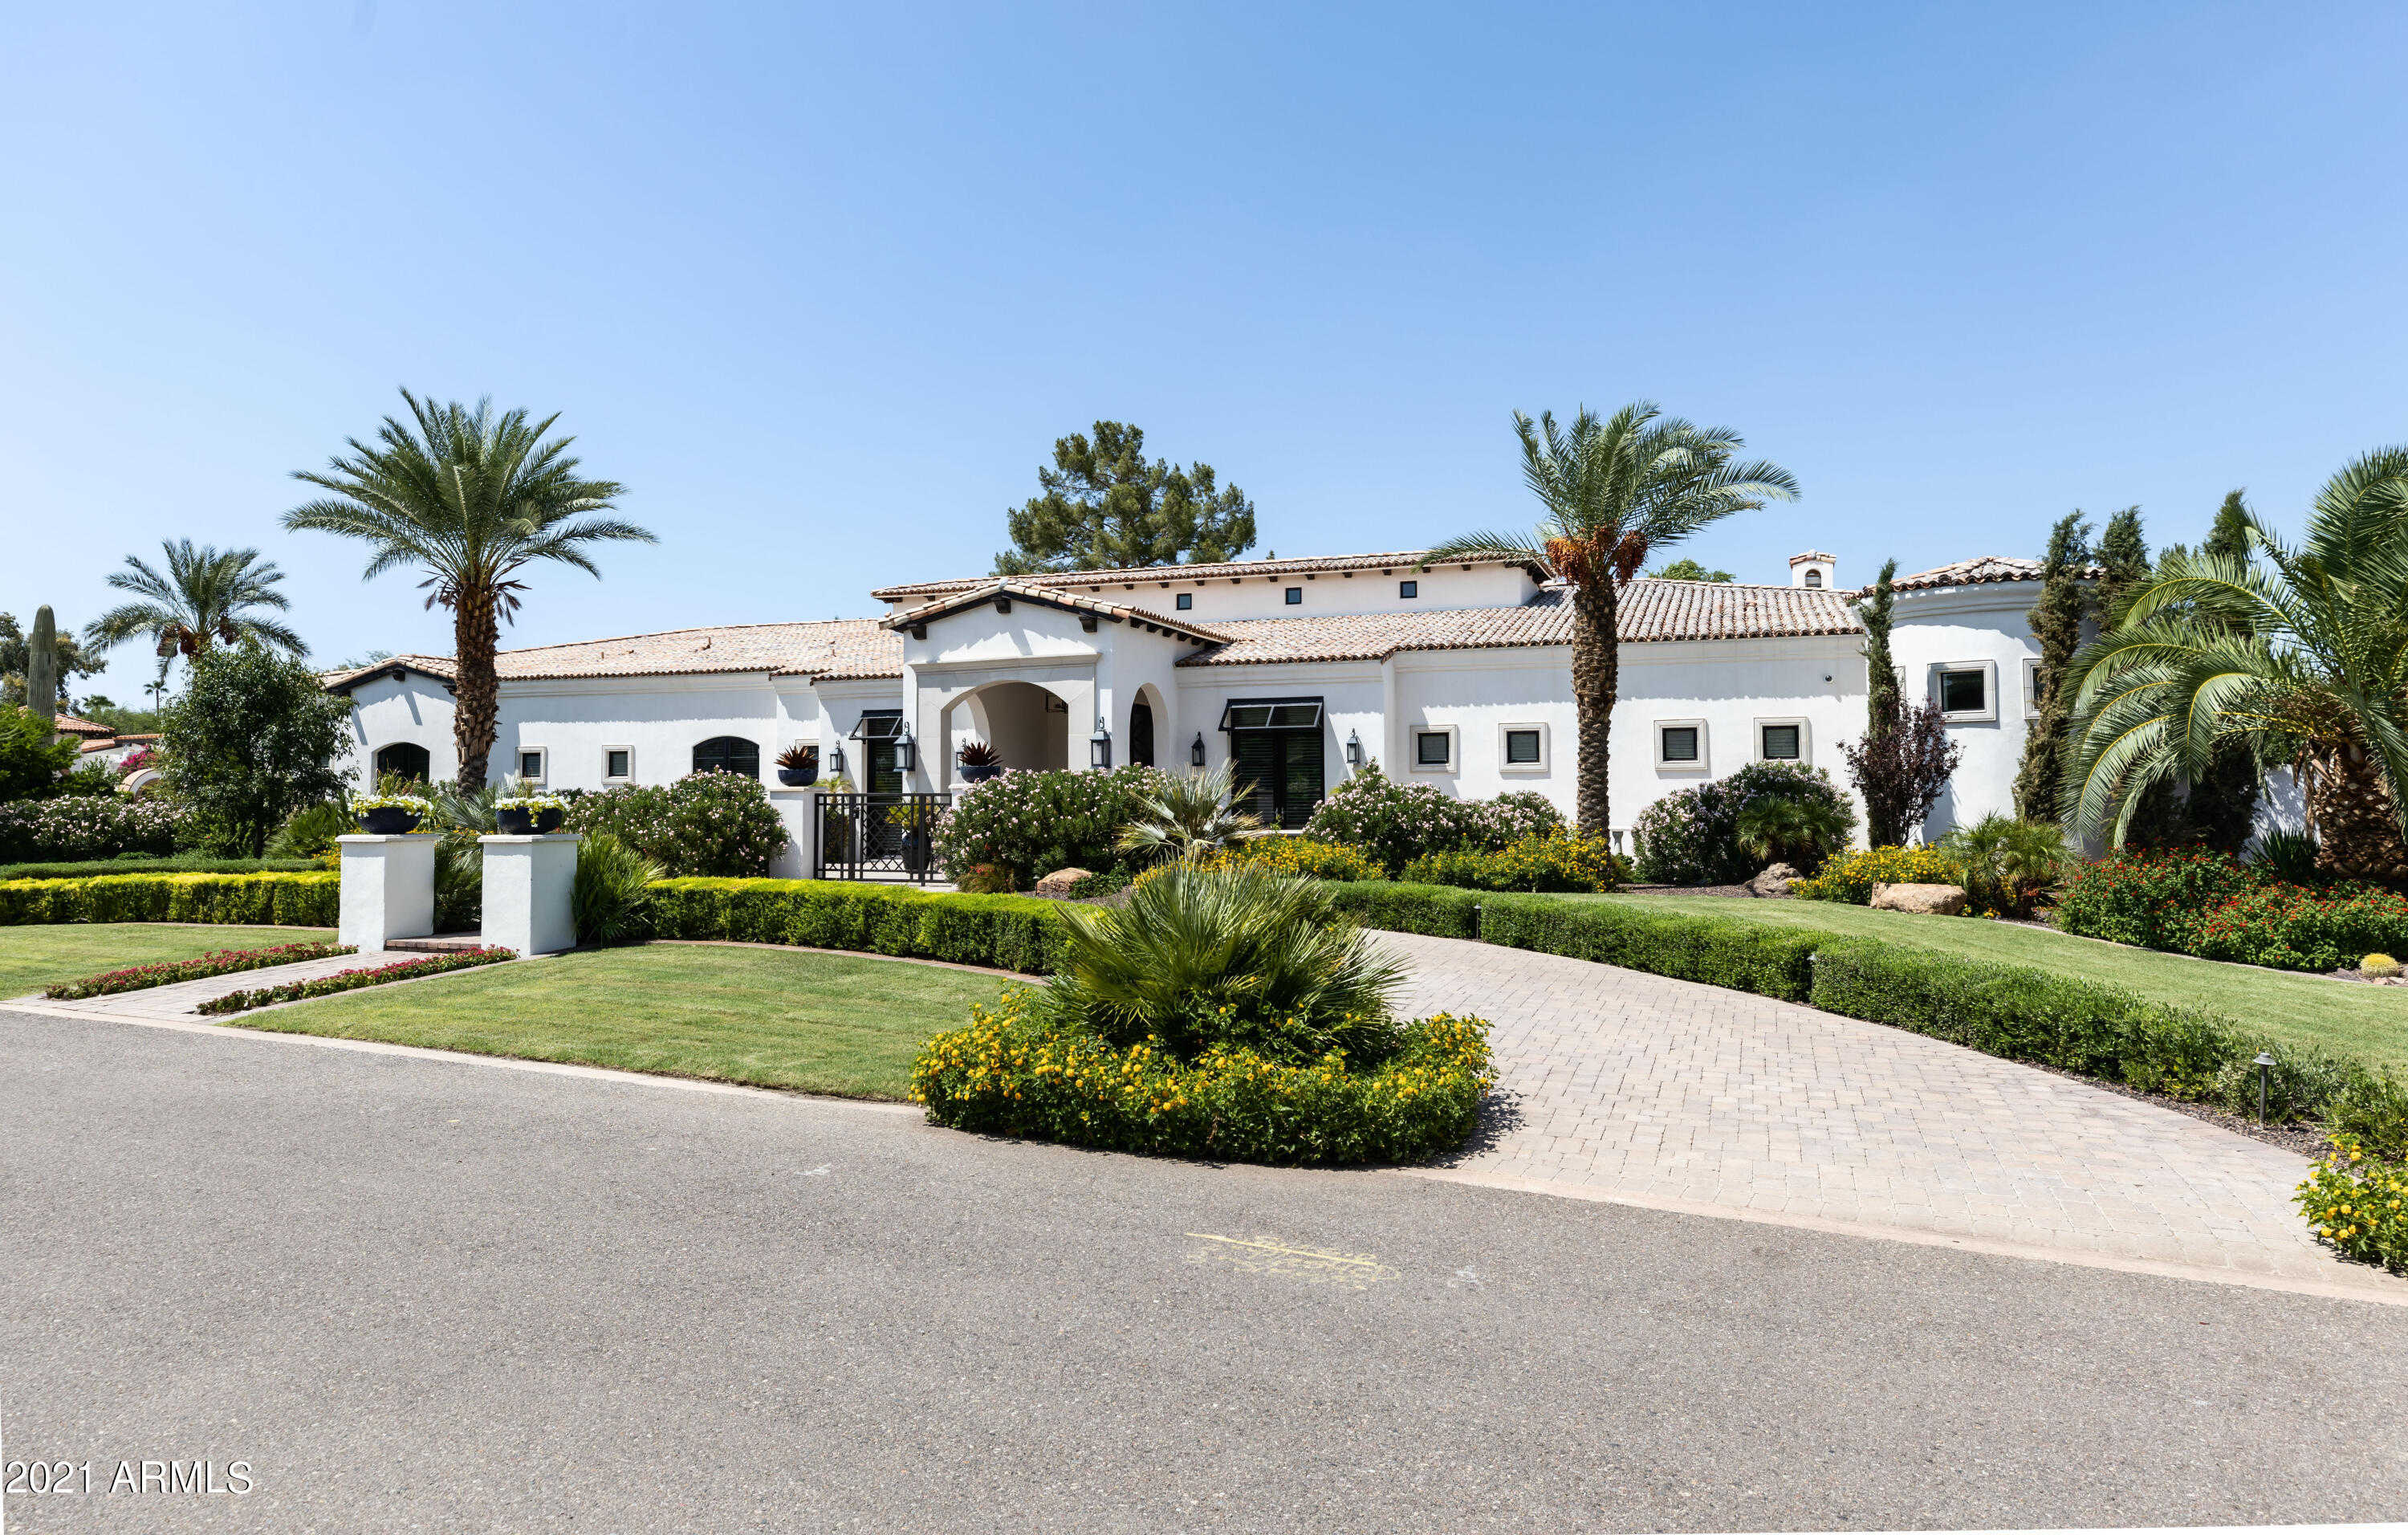 $6,999,900 - 5Br/10Ba - Home for Sale in Bradley Acres, Paradise Valley